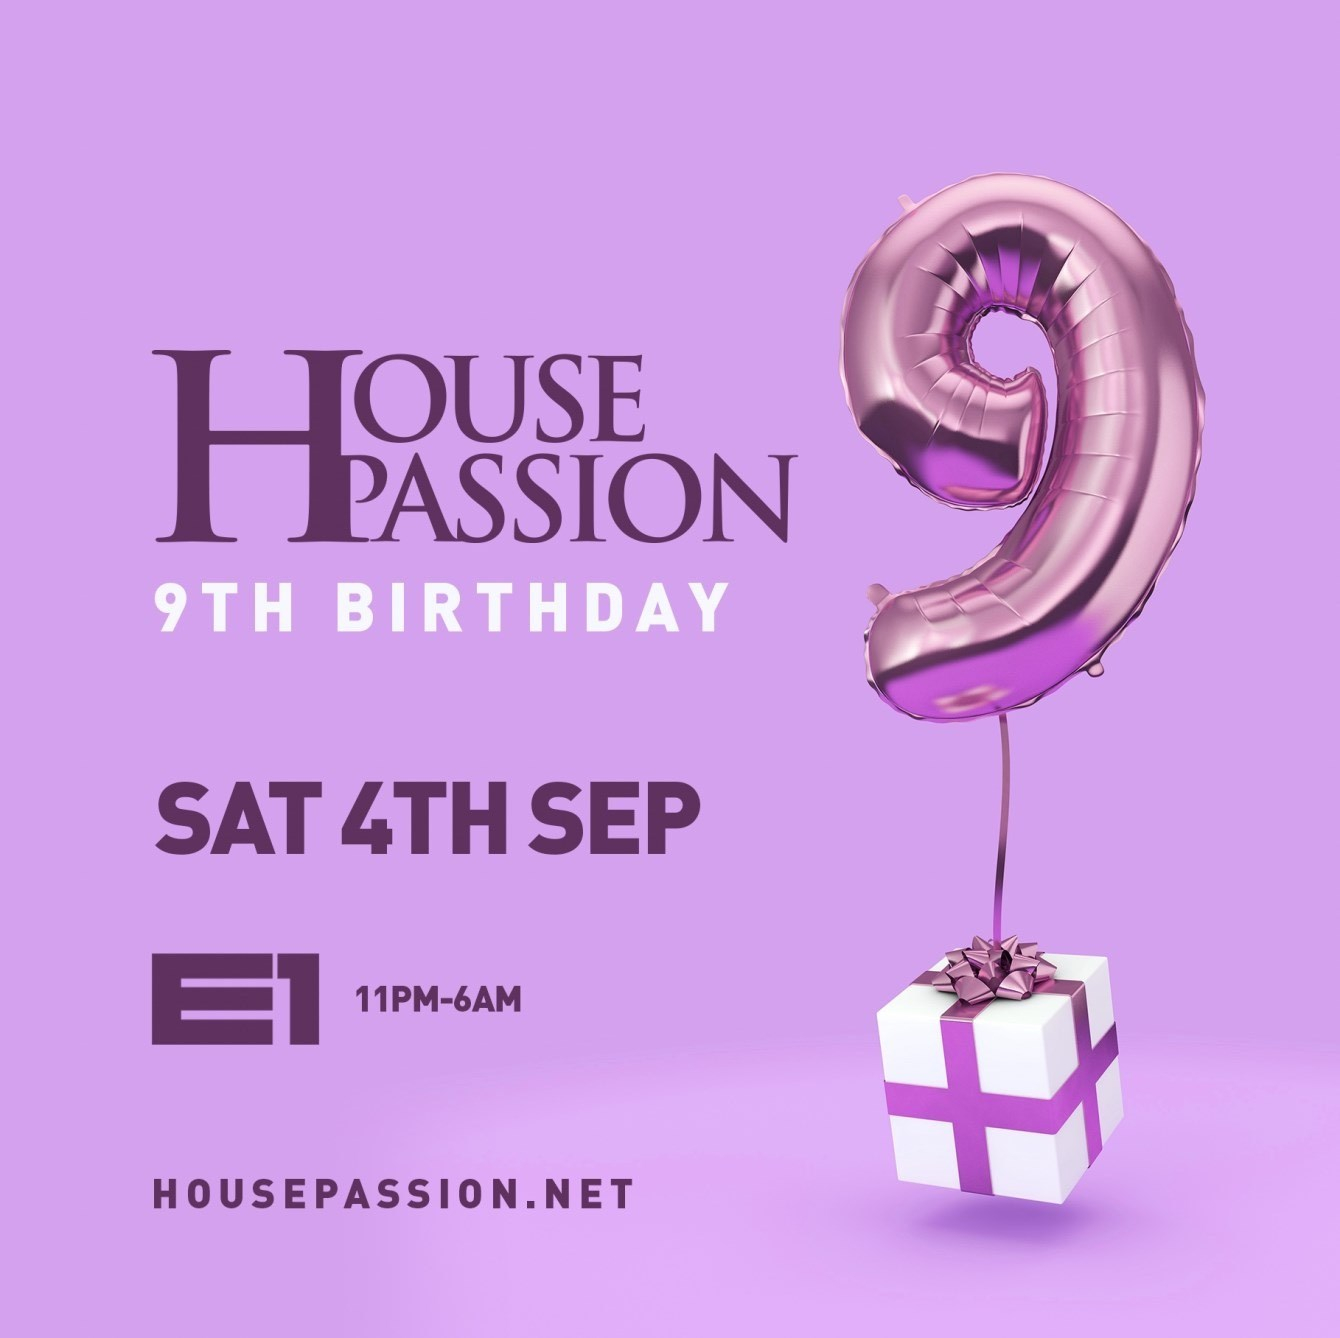 House Passion 9th Birthday - Flyer front